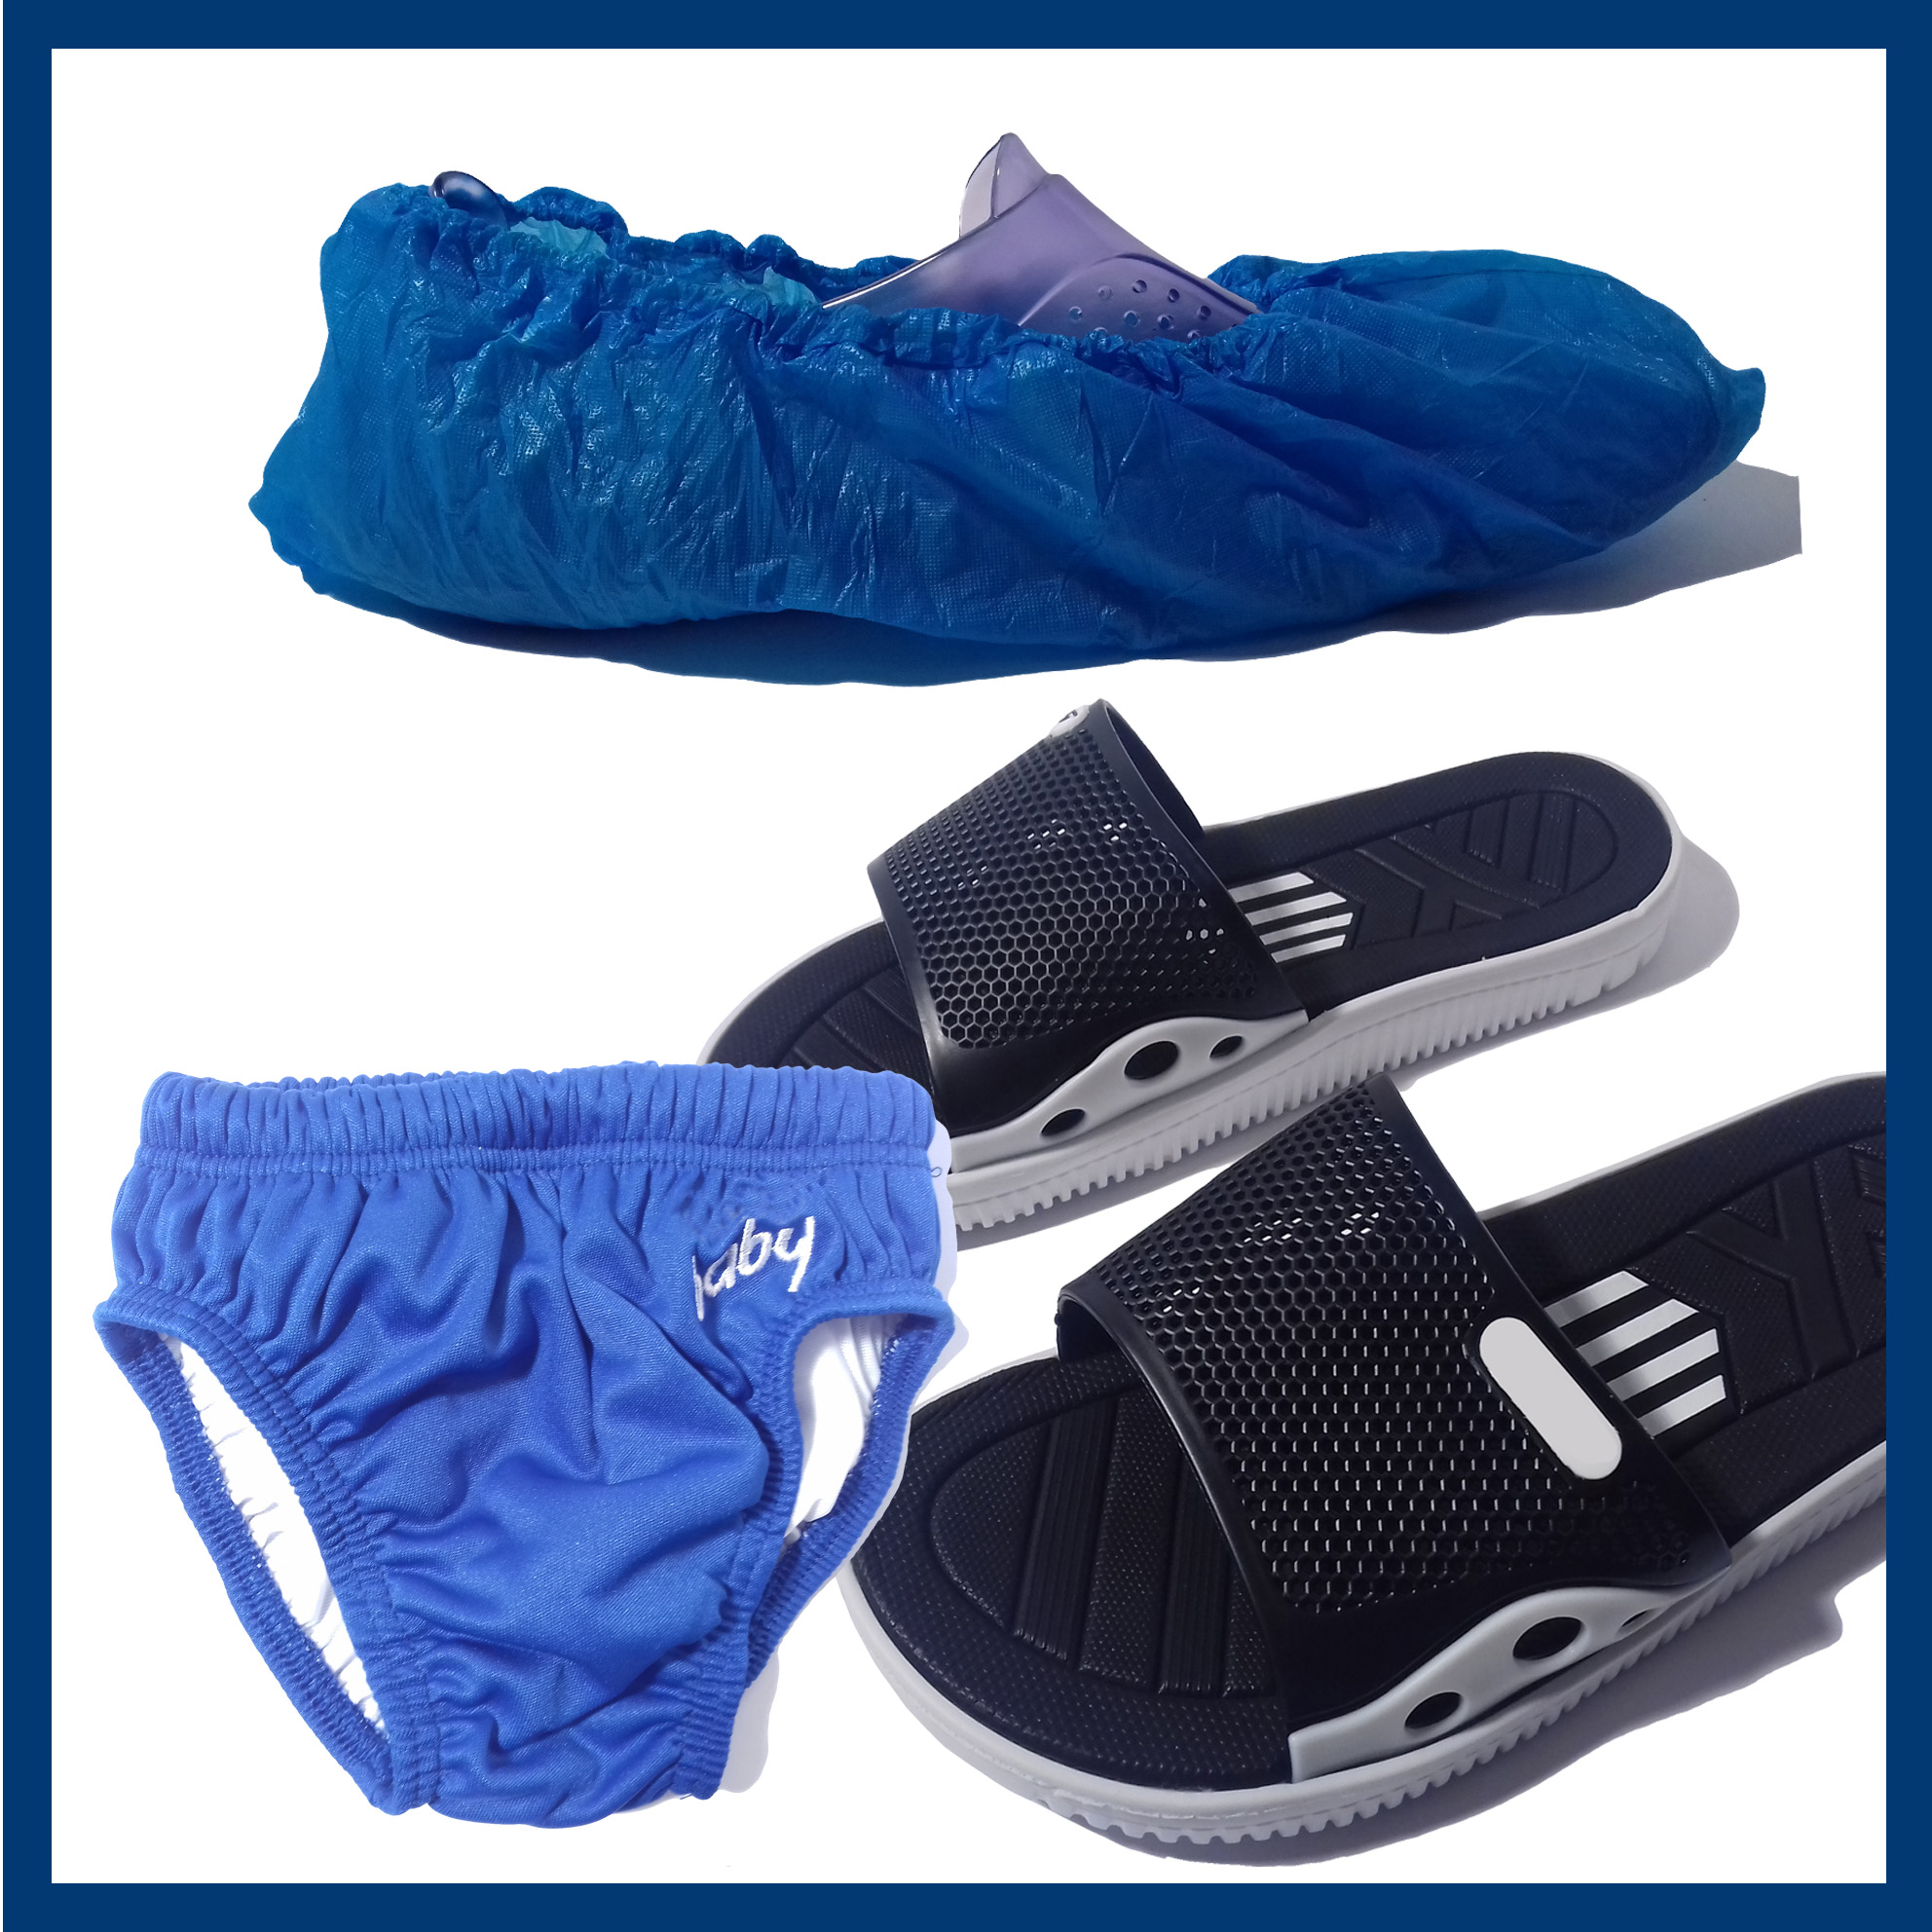 SHOES SWIMMWEAR ACCESSORIES